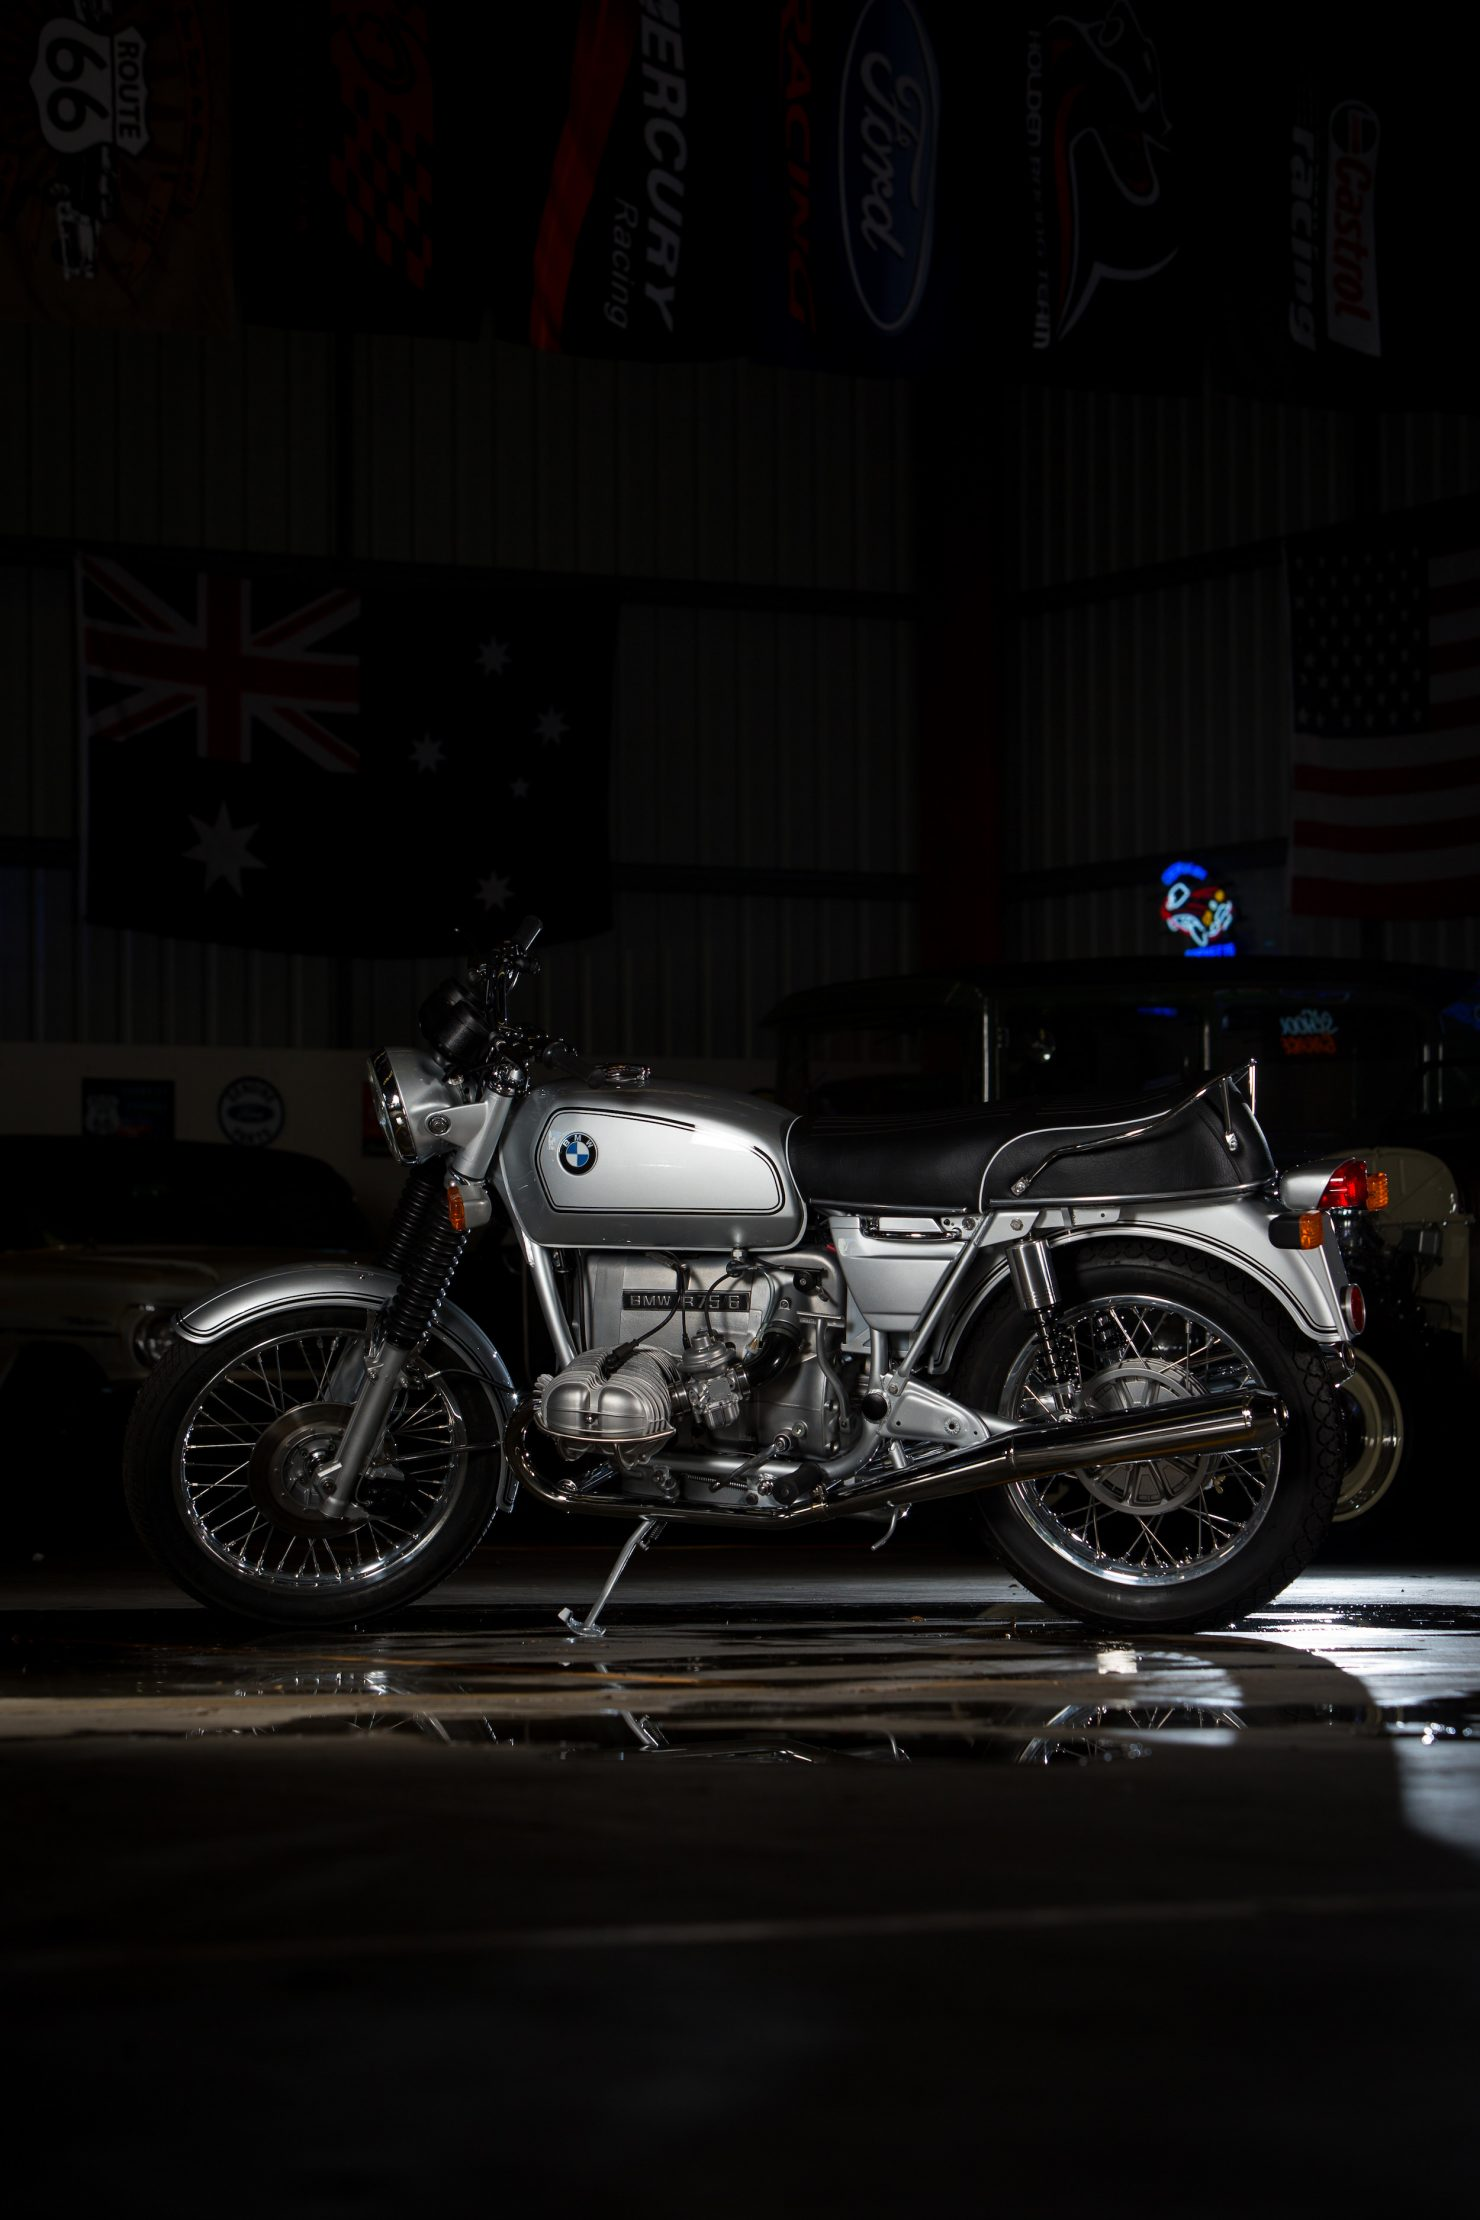 AM6P0573 1480x2220 - Immaculately Restored: BMW R75/6